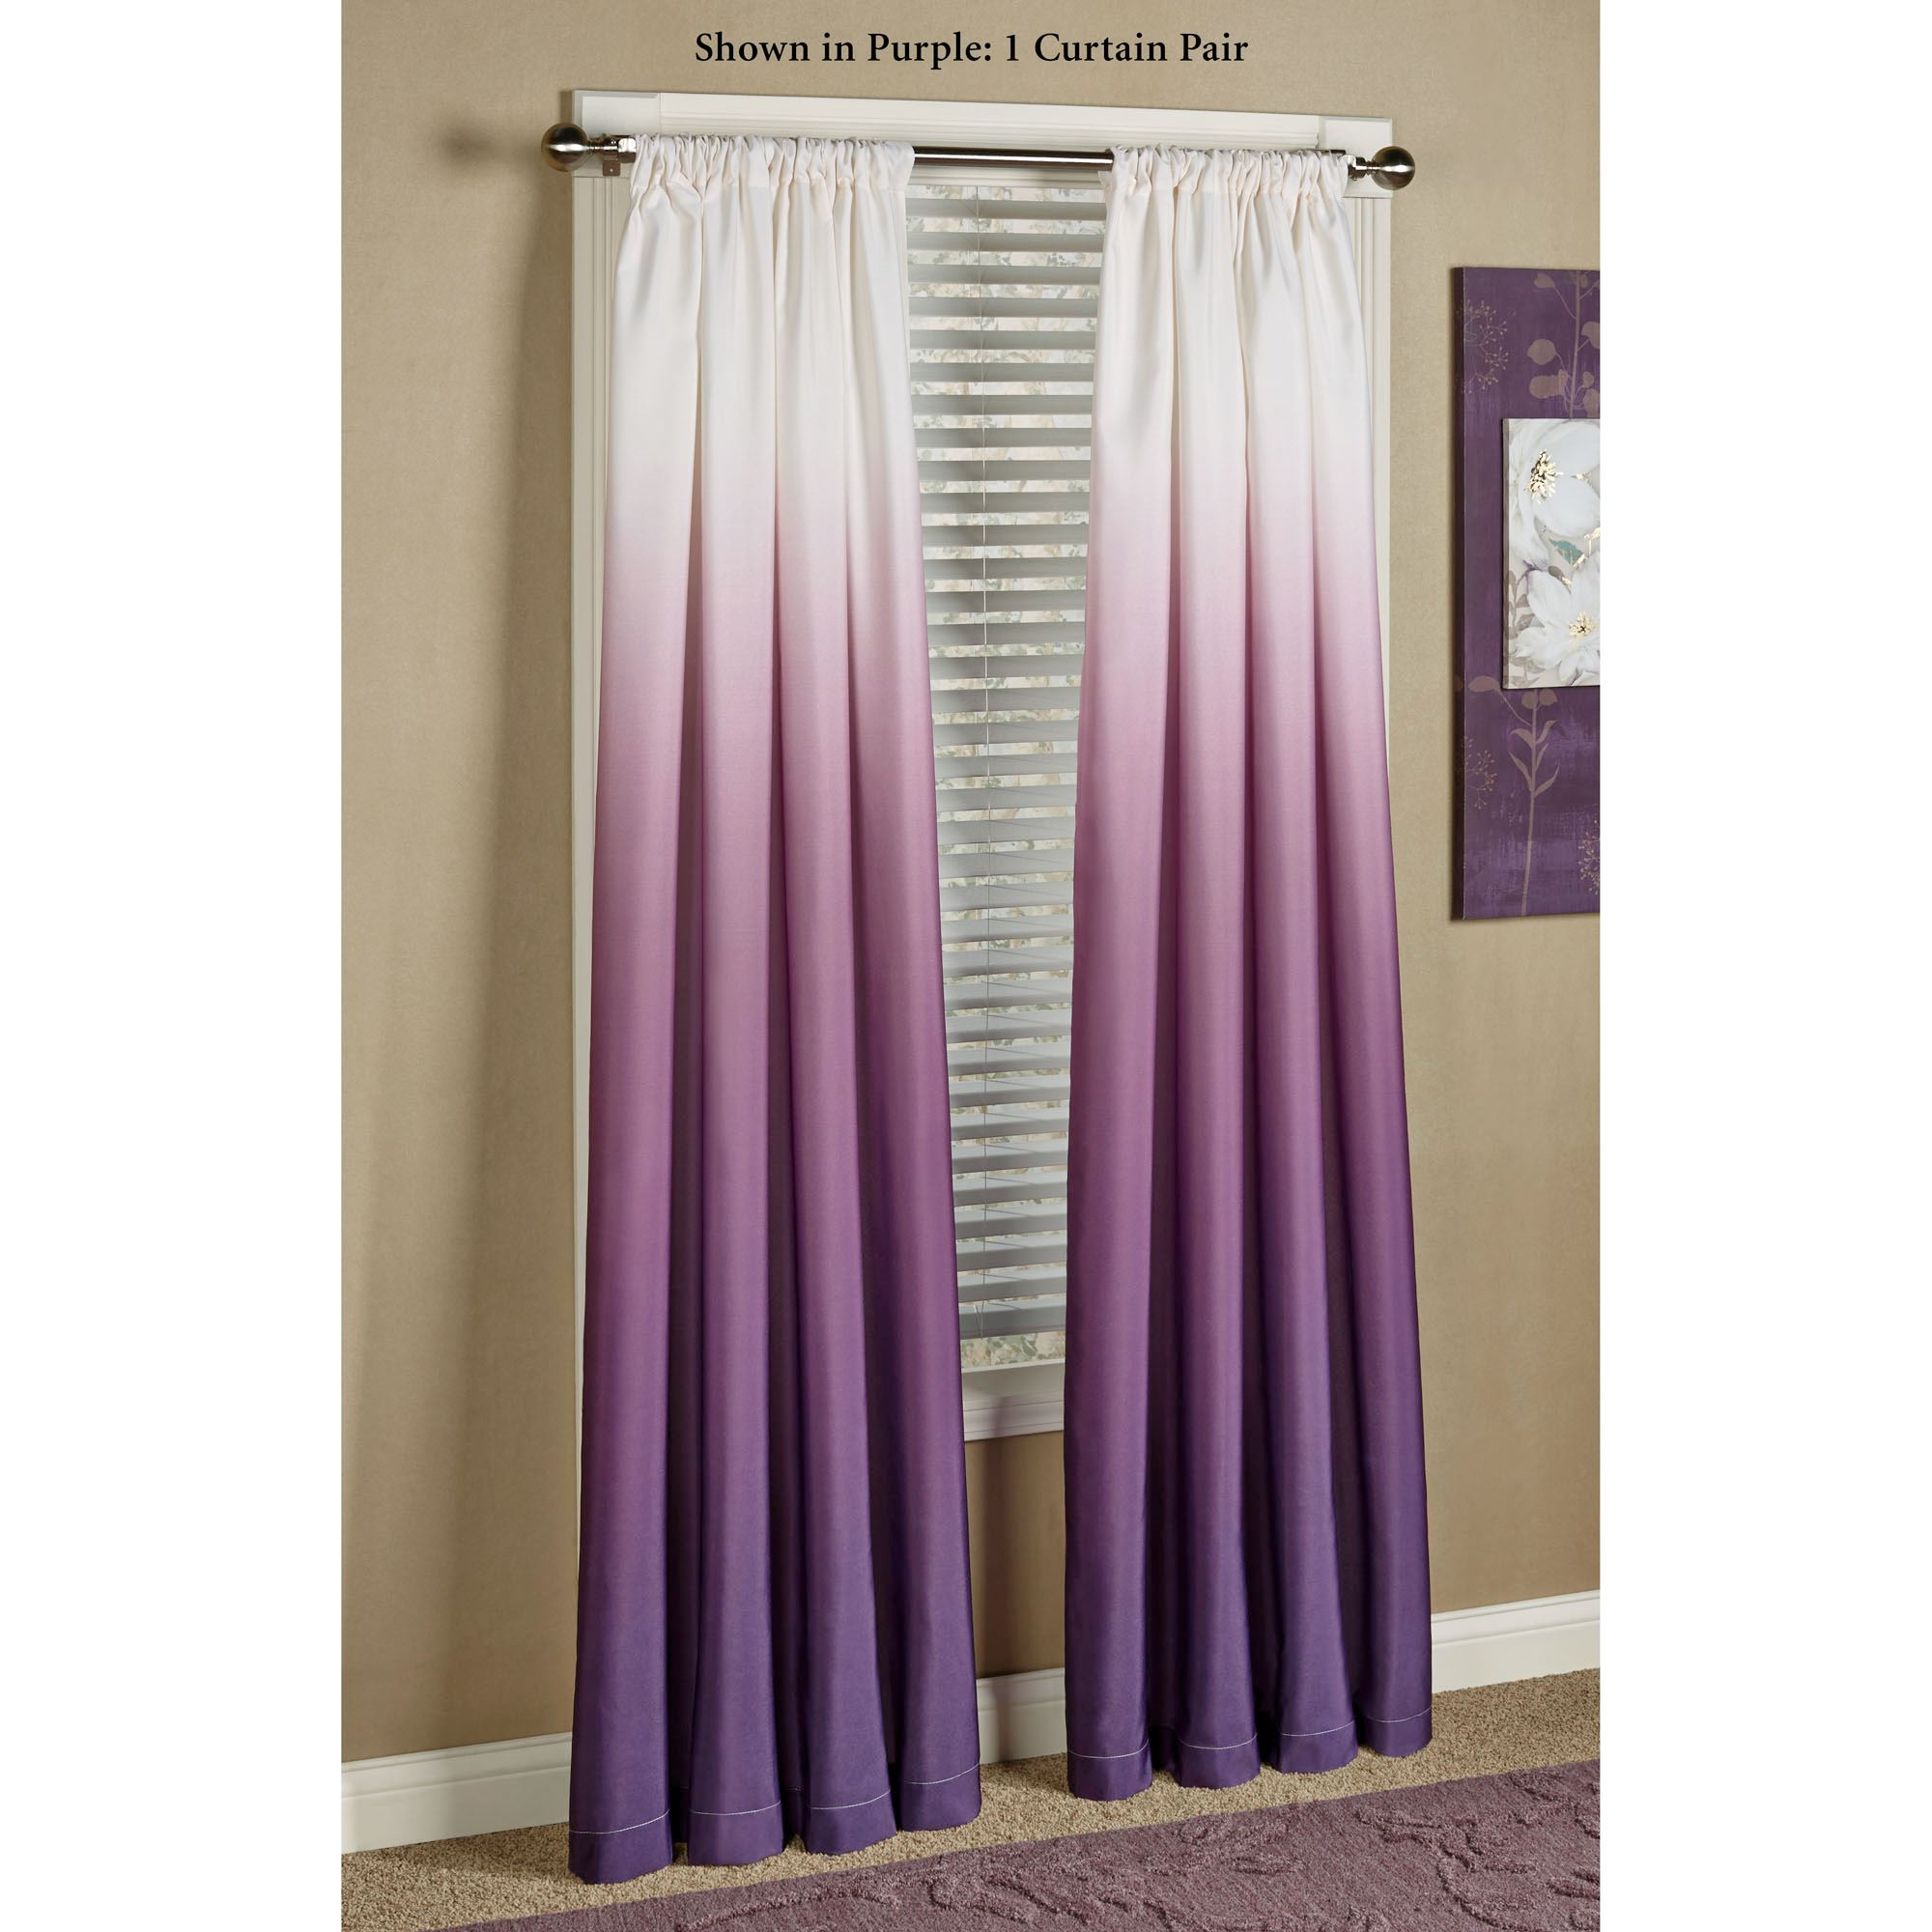 panels purple collection panpoly curtains purp premium rod set panel polyester pockets products curtain retardant of stage partition cur with backdrop backdrops fire